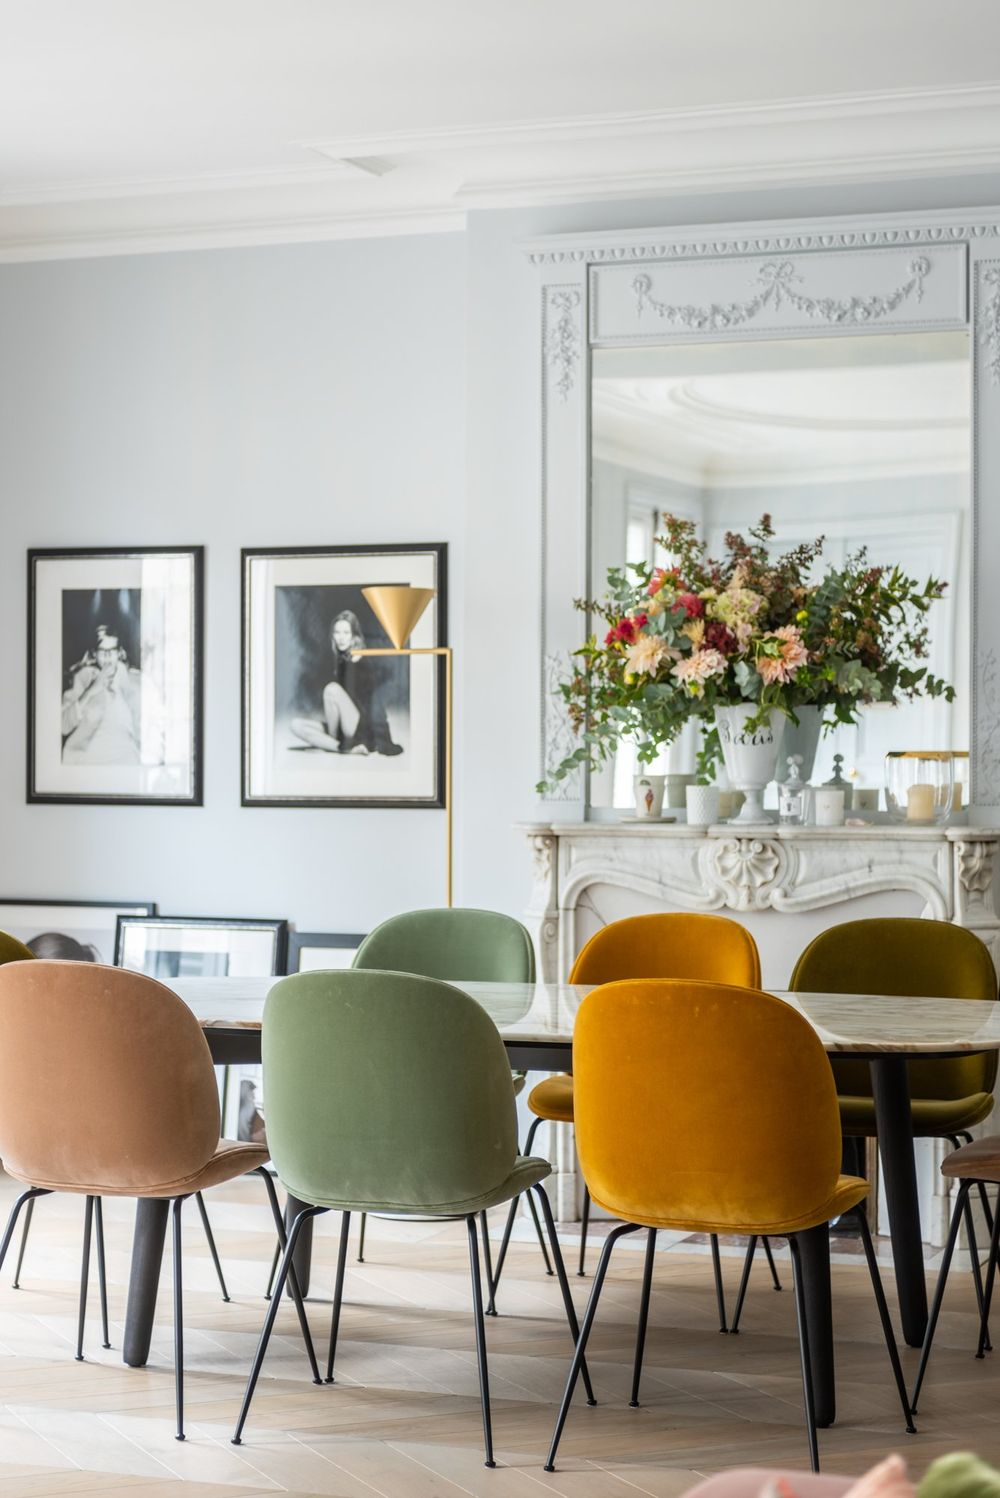 Parisian dining room with yellow, green, and pink dining chairs via The Socialite Family Florence Elkouby